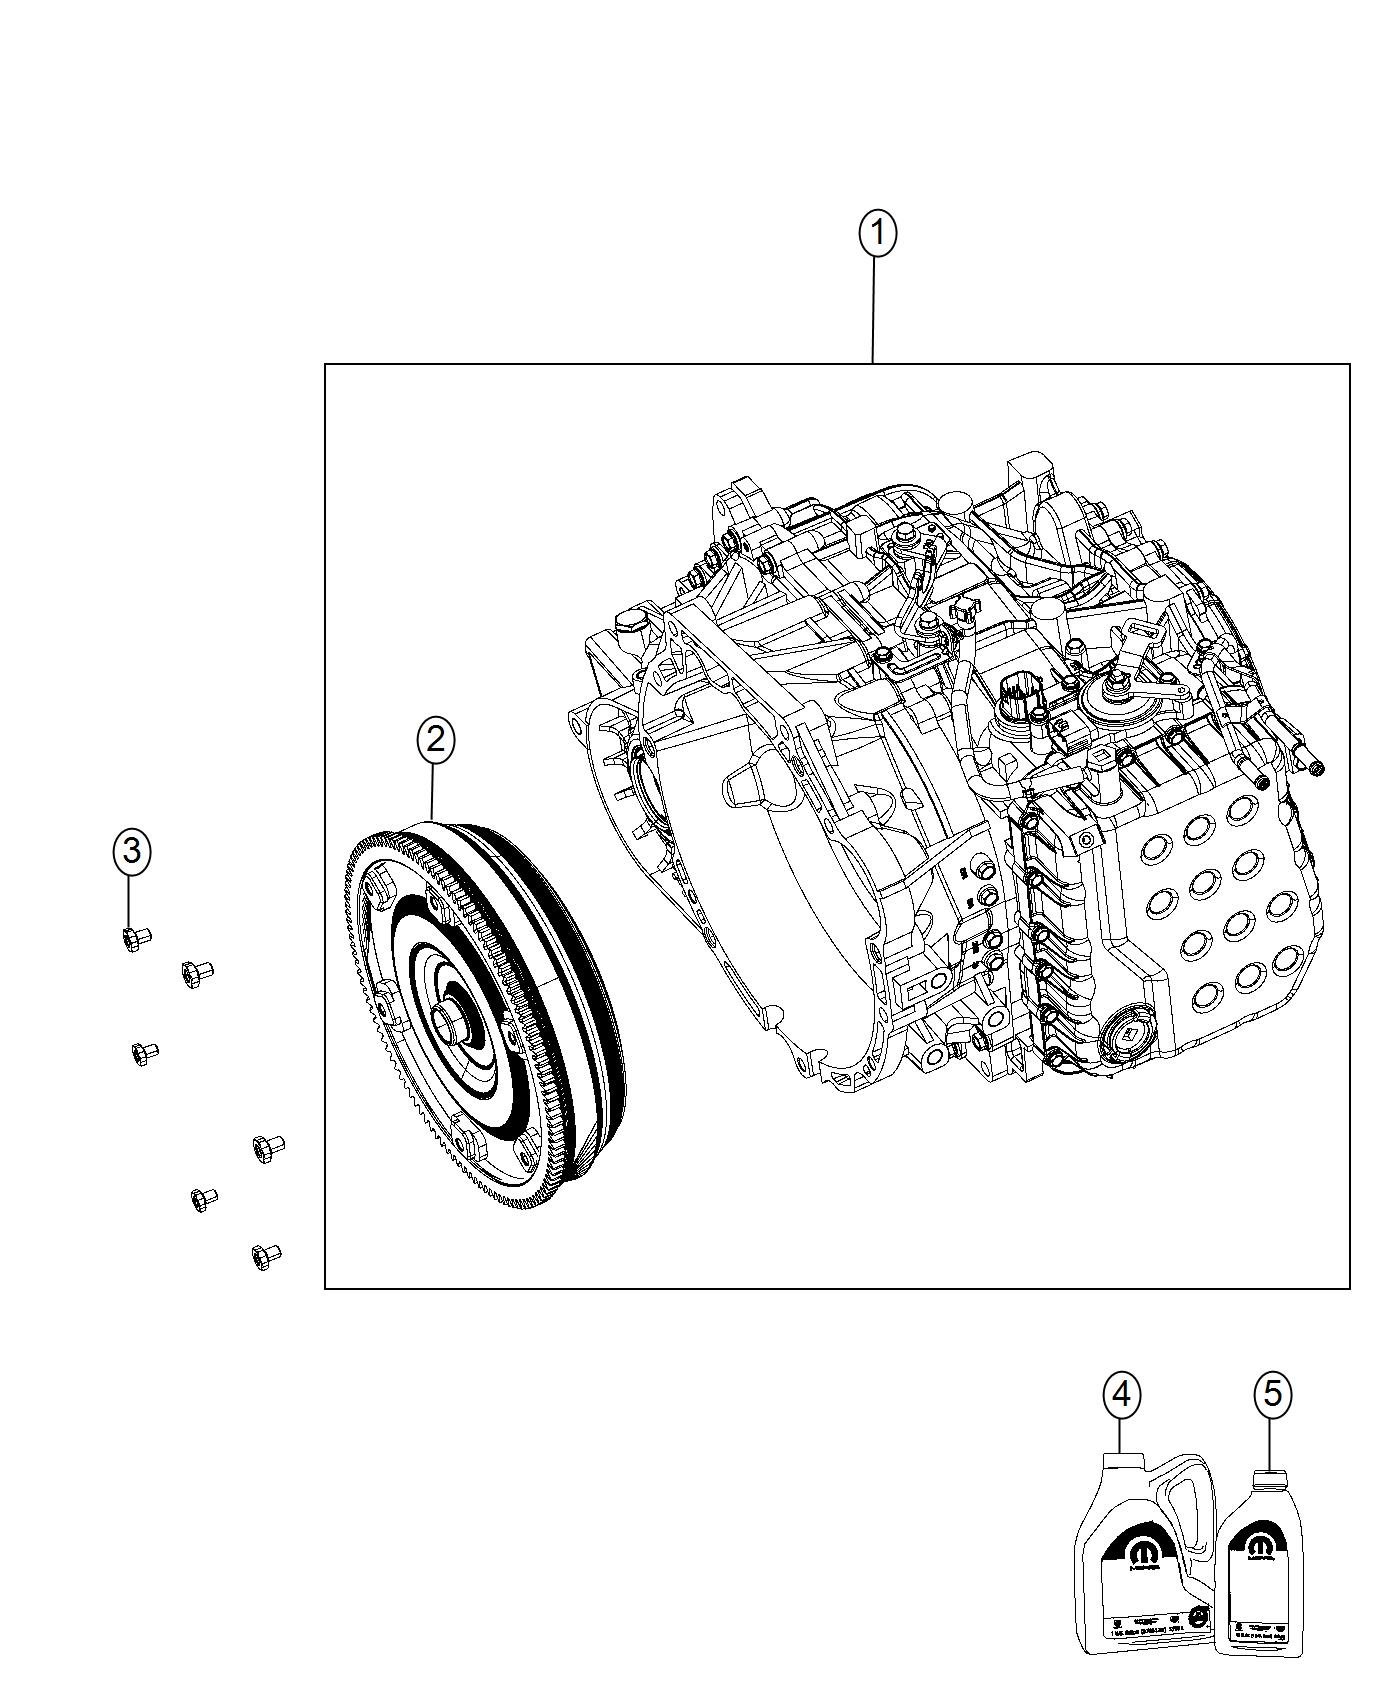 Jeep Compass Transmission With Torque Converter